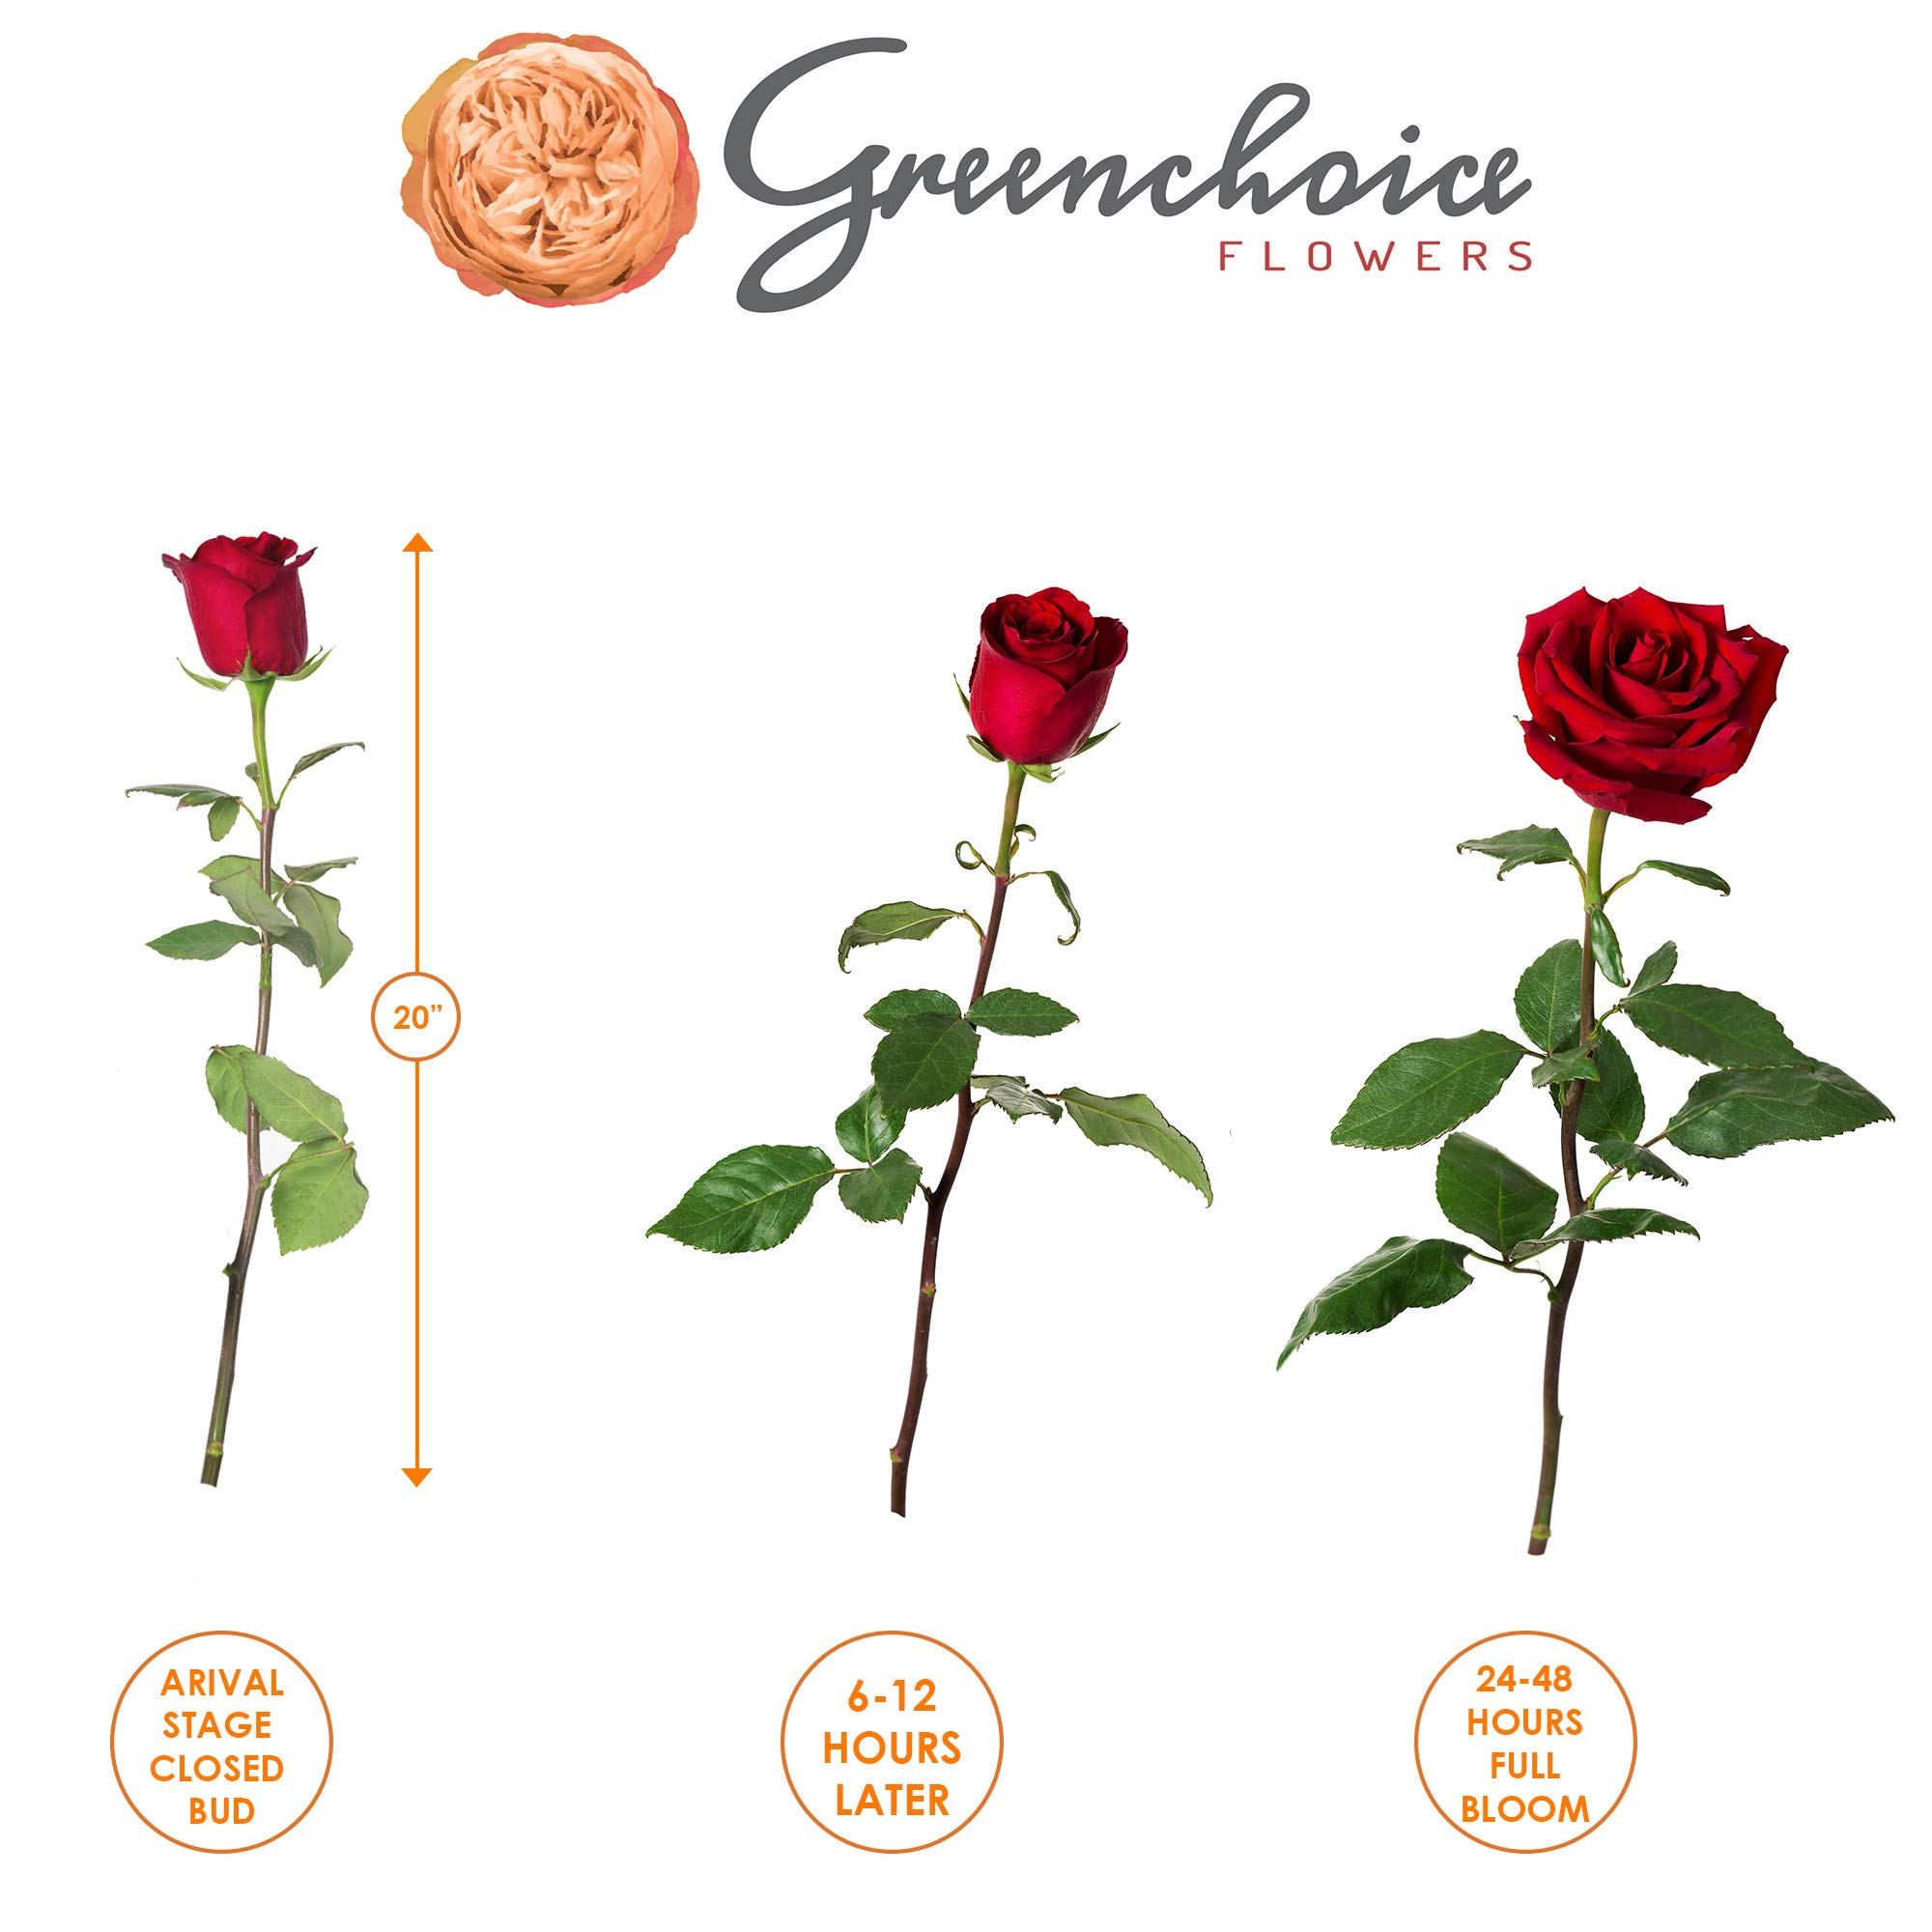 Green Choice Flowers - 24 ( 2 Dozen ) Premium Pink Fresh Roses with 20 inch Long Stem Farm Fresh Flowers Beautiful Light Pink Rose Flower Cut Per Order Direct from Farm Free Fast Delivery Long Lasting by Greenchoiceflowers (Image #4)